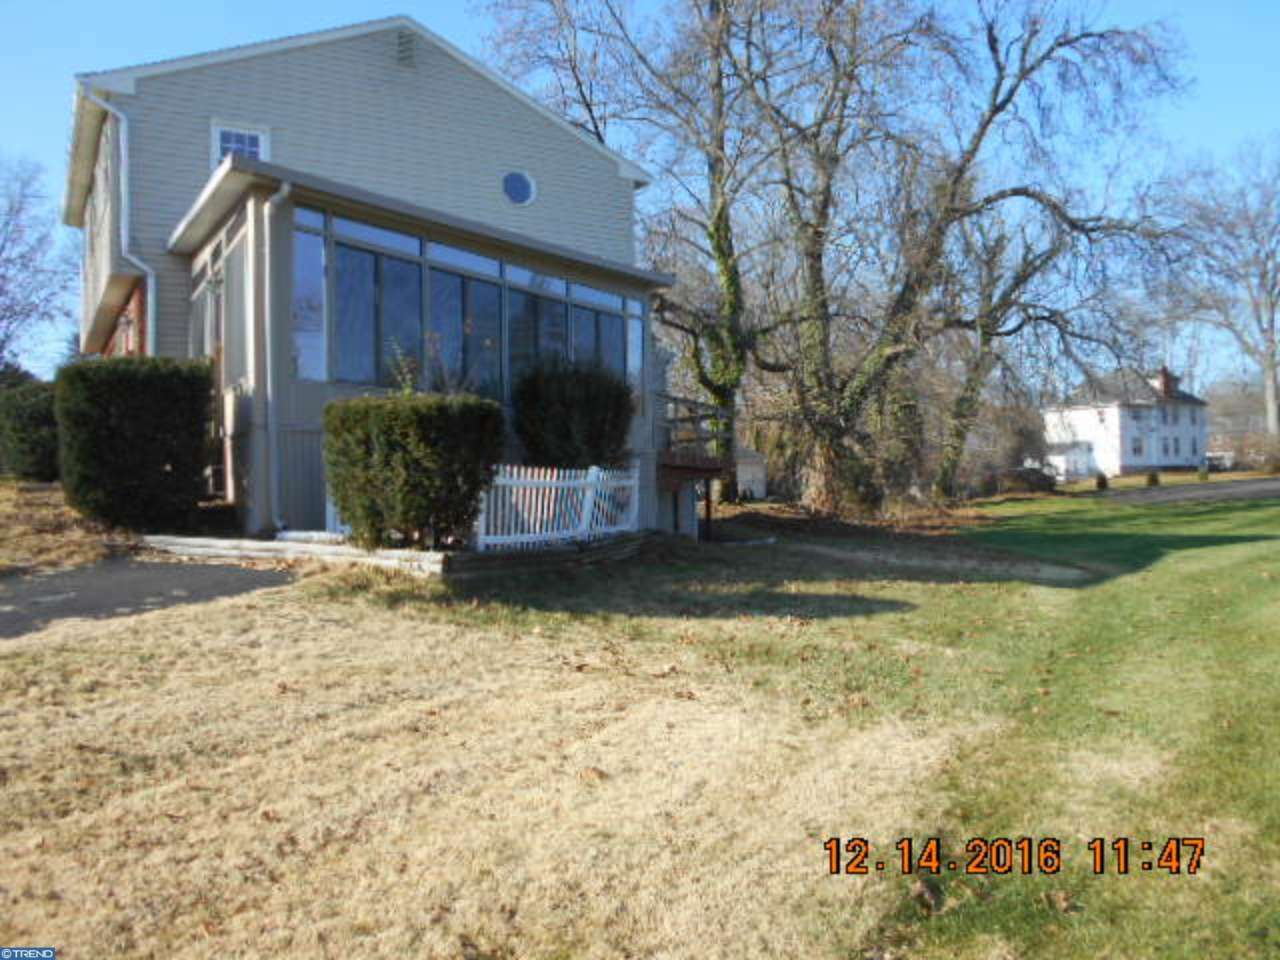 82 W Maple Ave, Morrisville, PA - USA (photo 4)